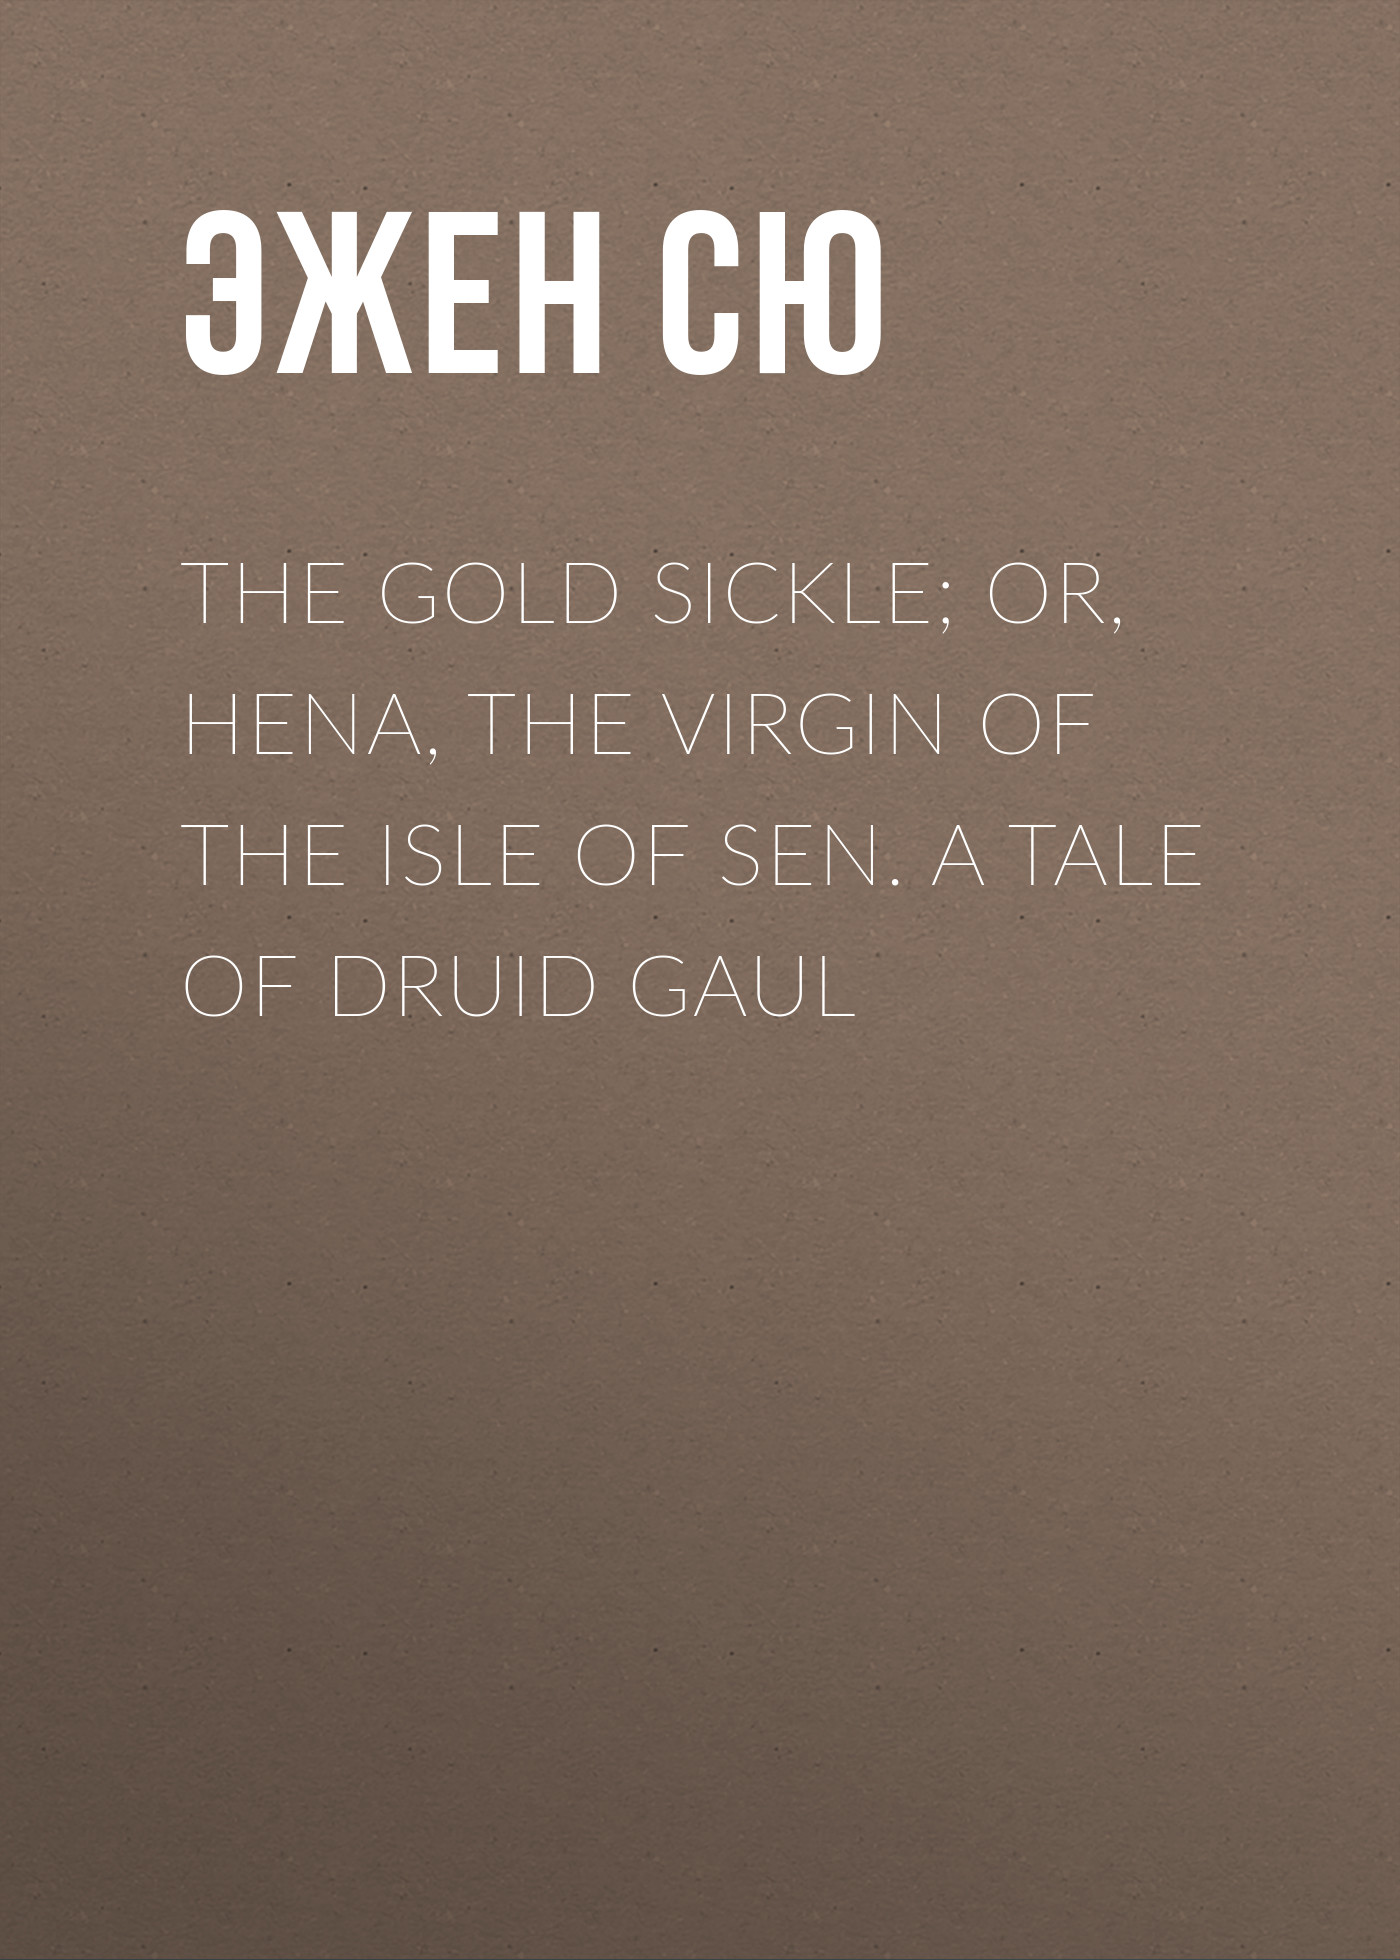 Фото - Эжен Сю The Gold Sickle; Or, Hena, The Virgin of The Isle of Sen. A Tale of Druid Gaul эжен сю the gold sickle or hena the virgin of the isle of sen a tale of druid gaul